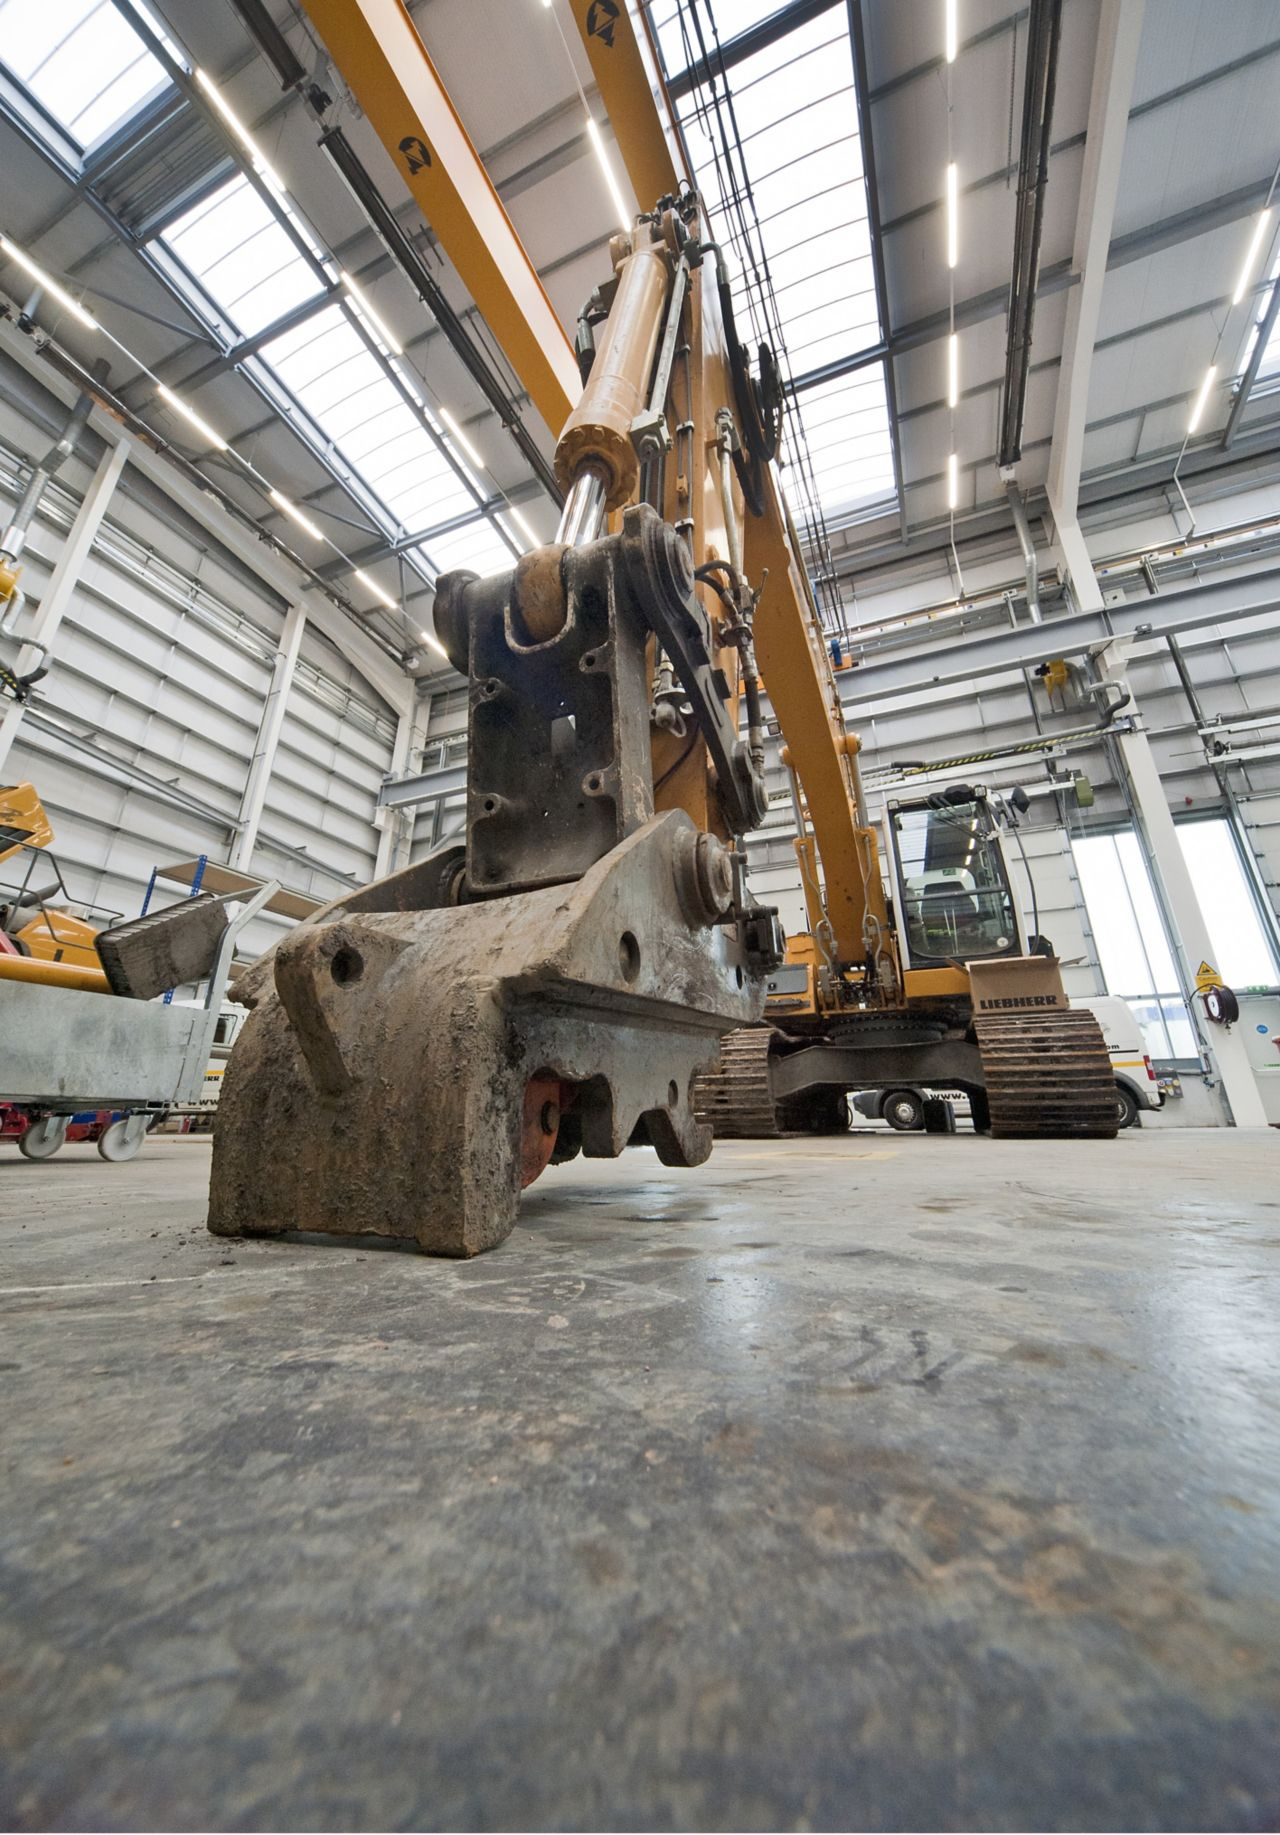 Excavator on a concrete floor with dry shake aggregate floor hardeners